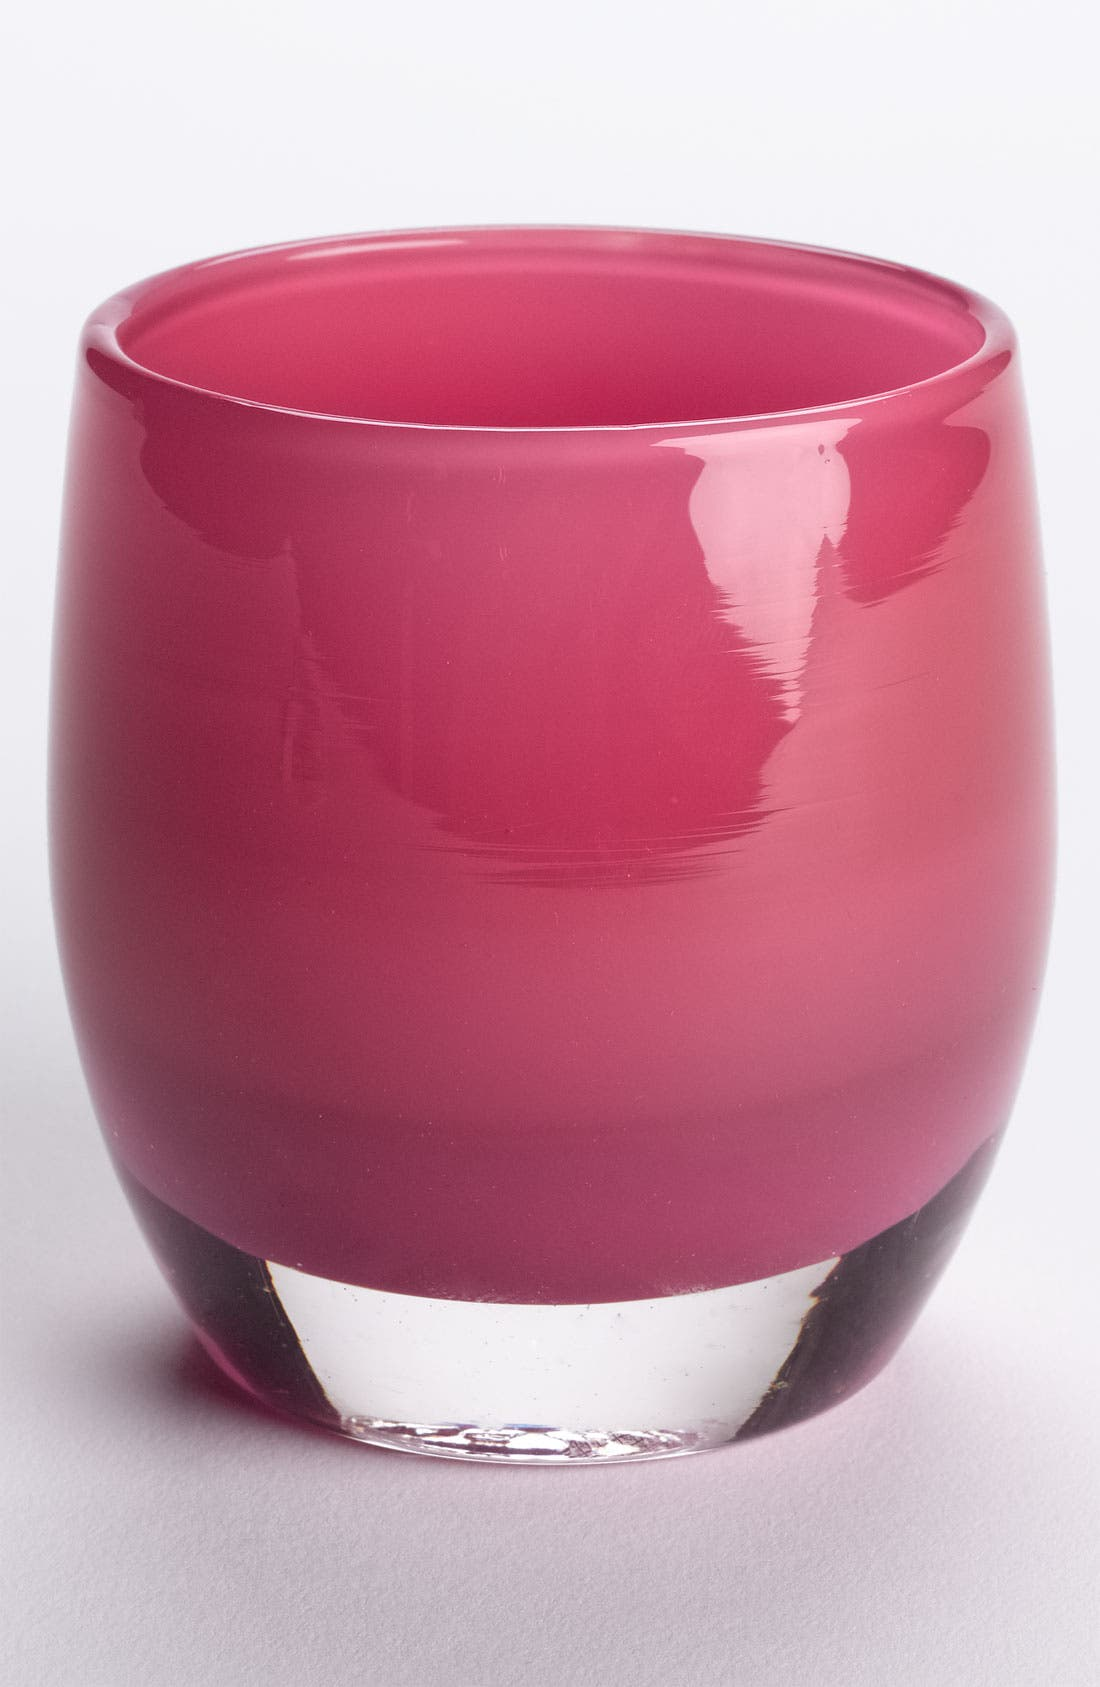 Main Image - glassybaby 'Evelyn' Candle Holder (Nordstrom Exclusive)